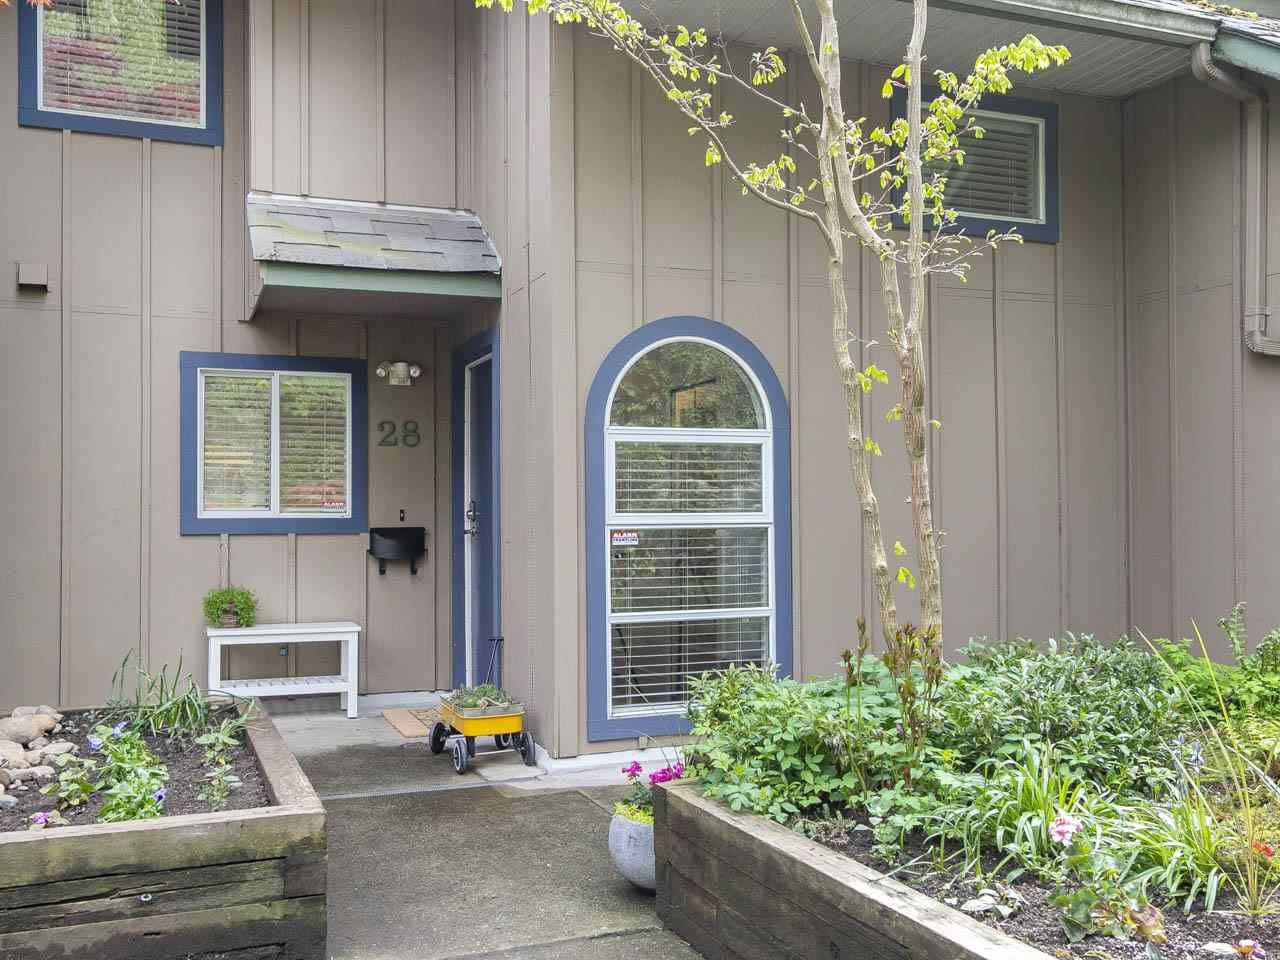 Main Photo: 28 900 W 17 STREET in North Vancouver: Hamilton Townhouse for sale : MLS®# R2262467